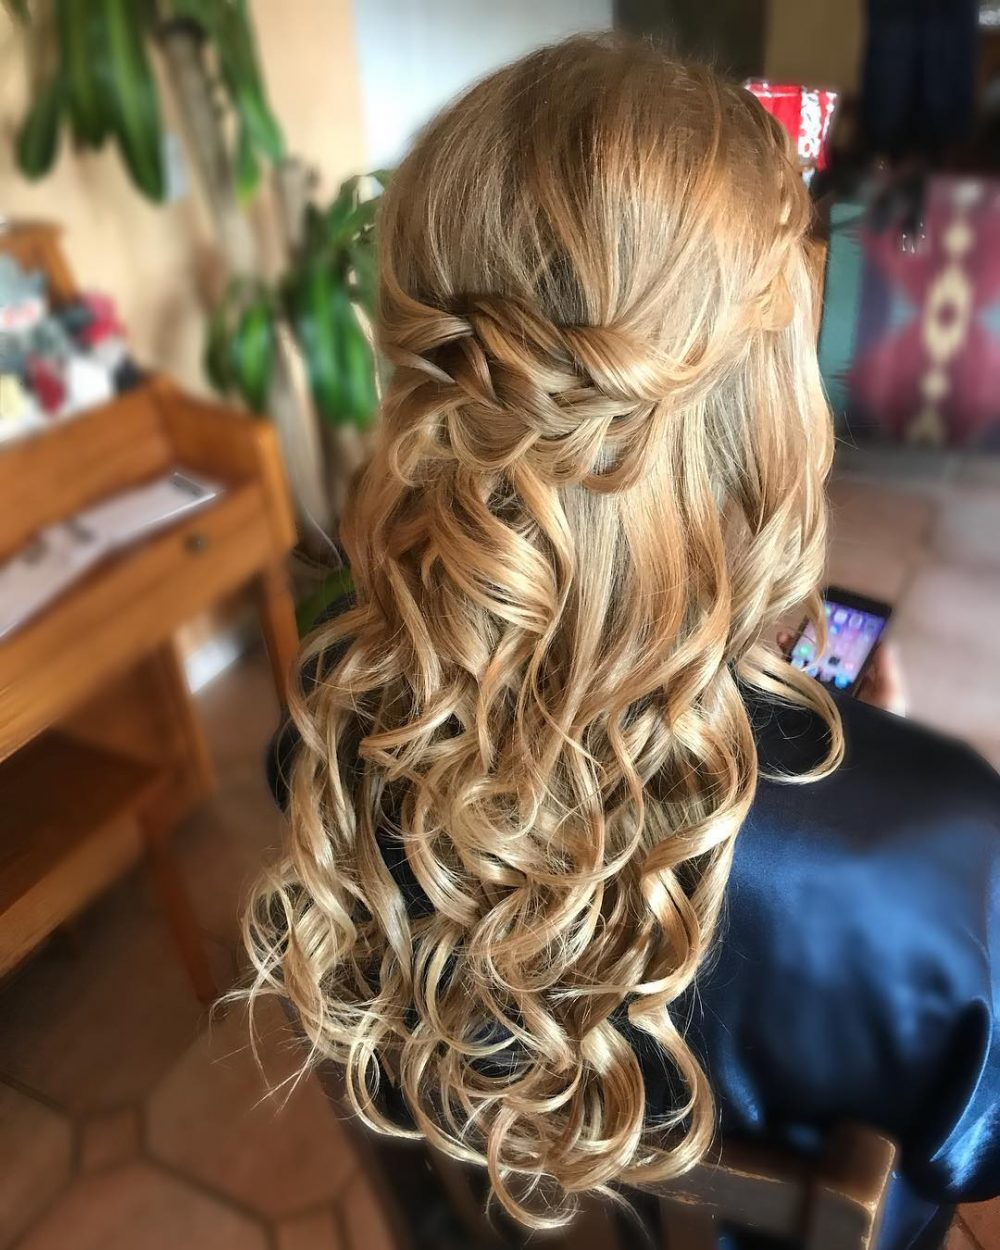 Wedding hairstyles for long hair 15 creative unique wedding styles boho half up half down hairstyle junglespirit Choice Image